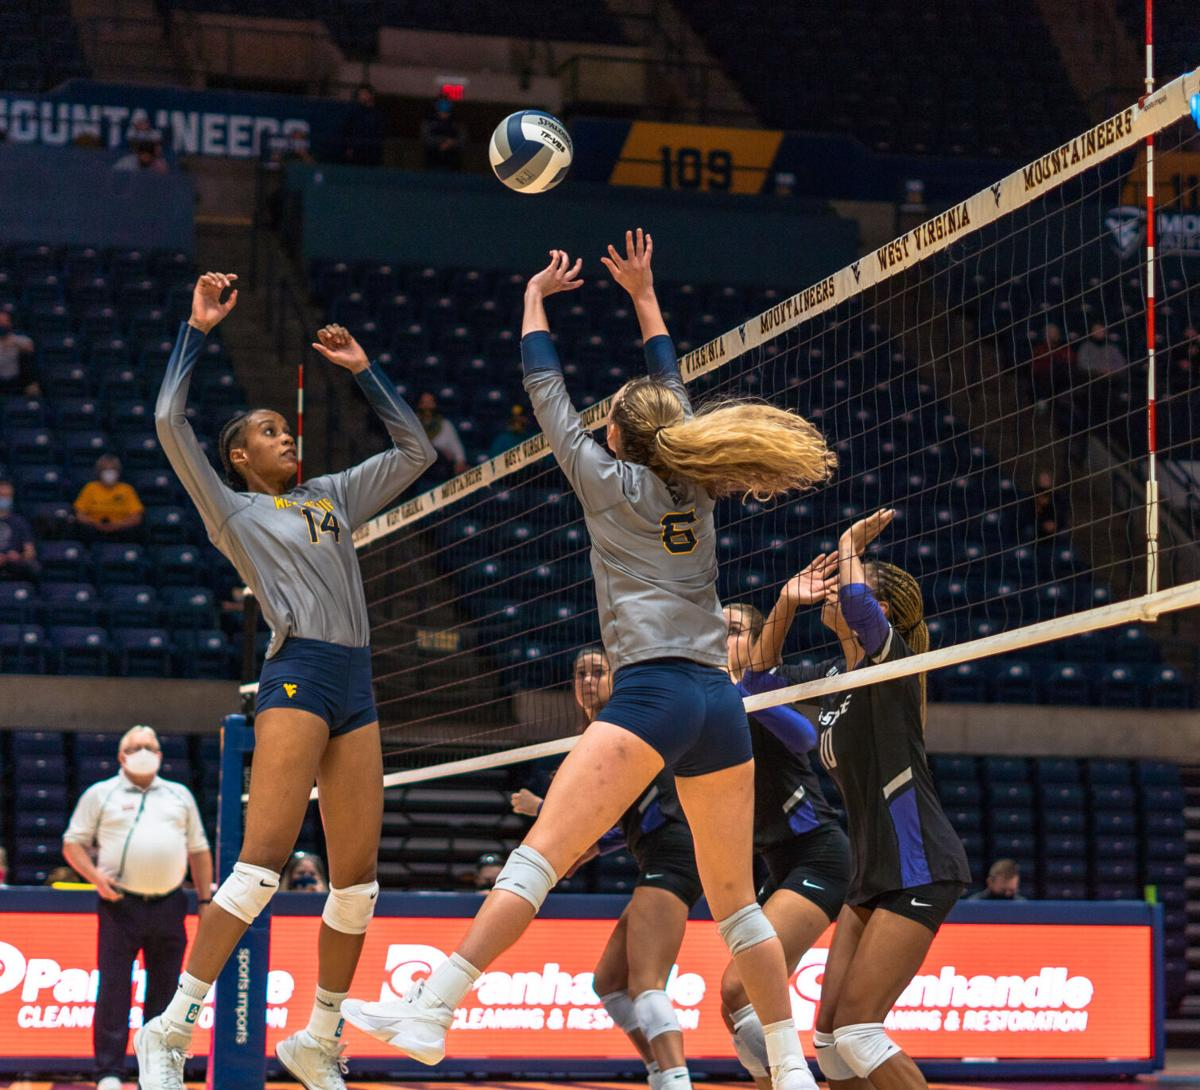 Wvu Volleyball Drops Home Opener In Five Sets Against Ksu Volleyball Thedaonline Com